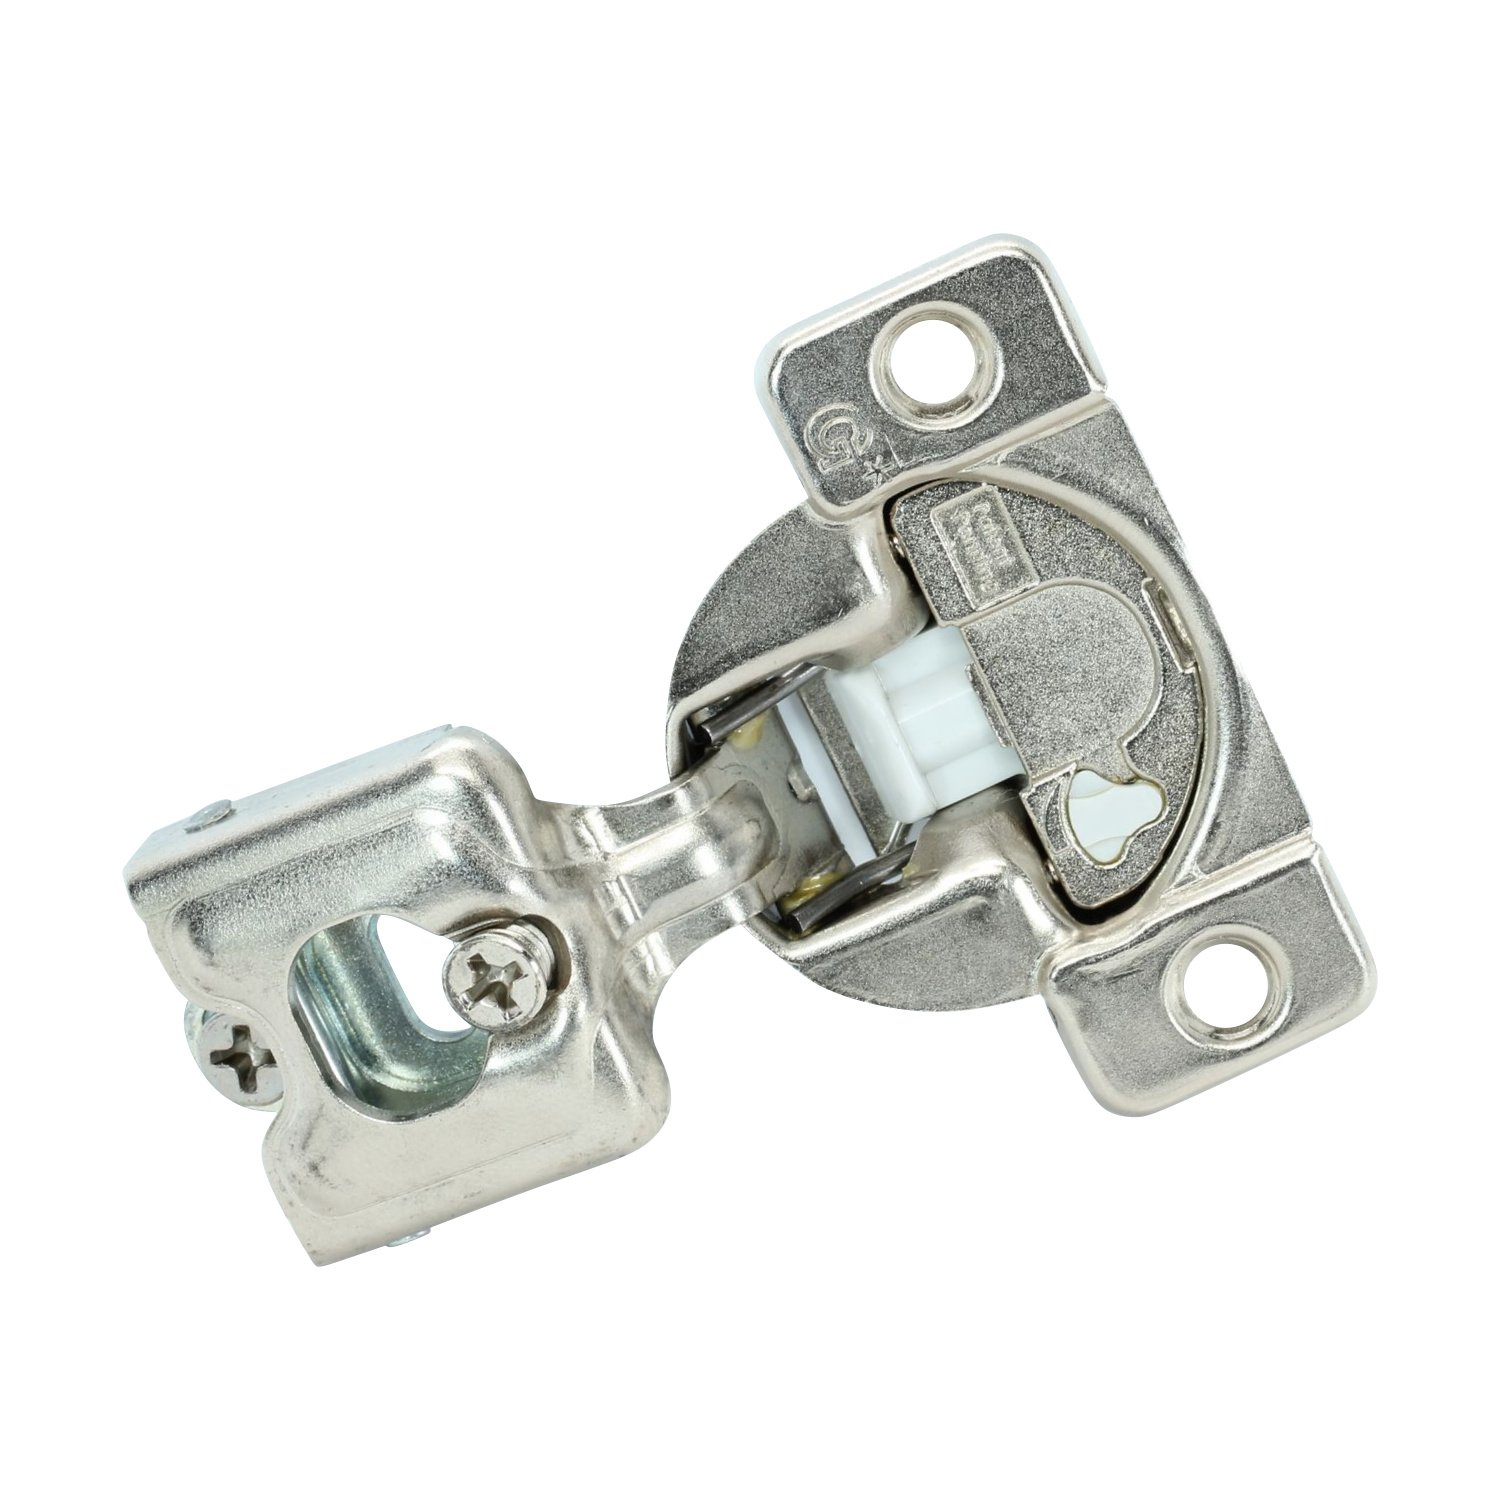 50 Pack Rok Hardware Grass TEC 864 108 Degree 3/4'' Overlay 3 Level Soft Close Screw On Compact Cabinet Hinge 04432A-15 3-Way Adjustment 45mm Boring Pattern